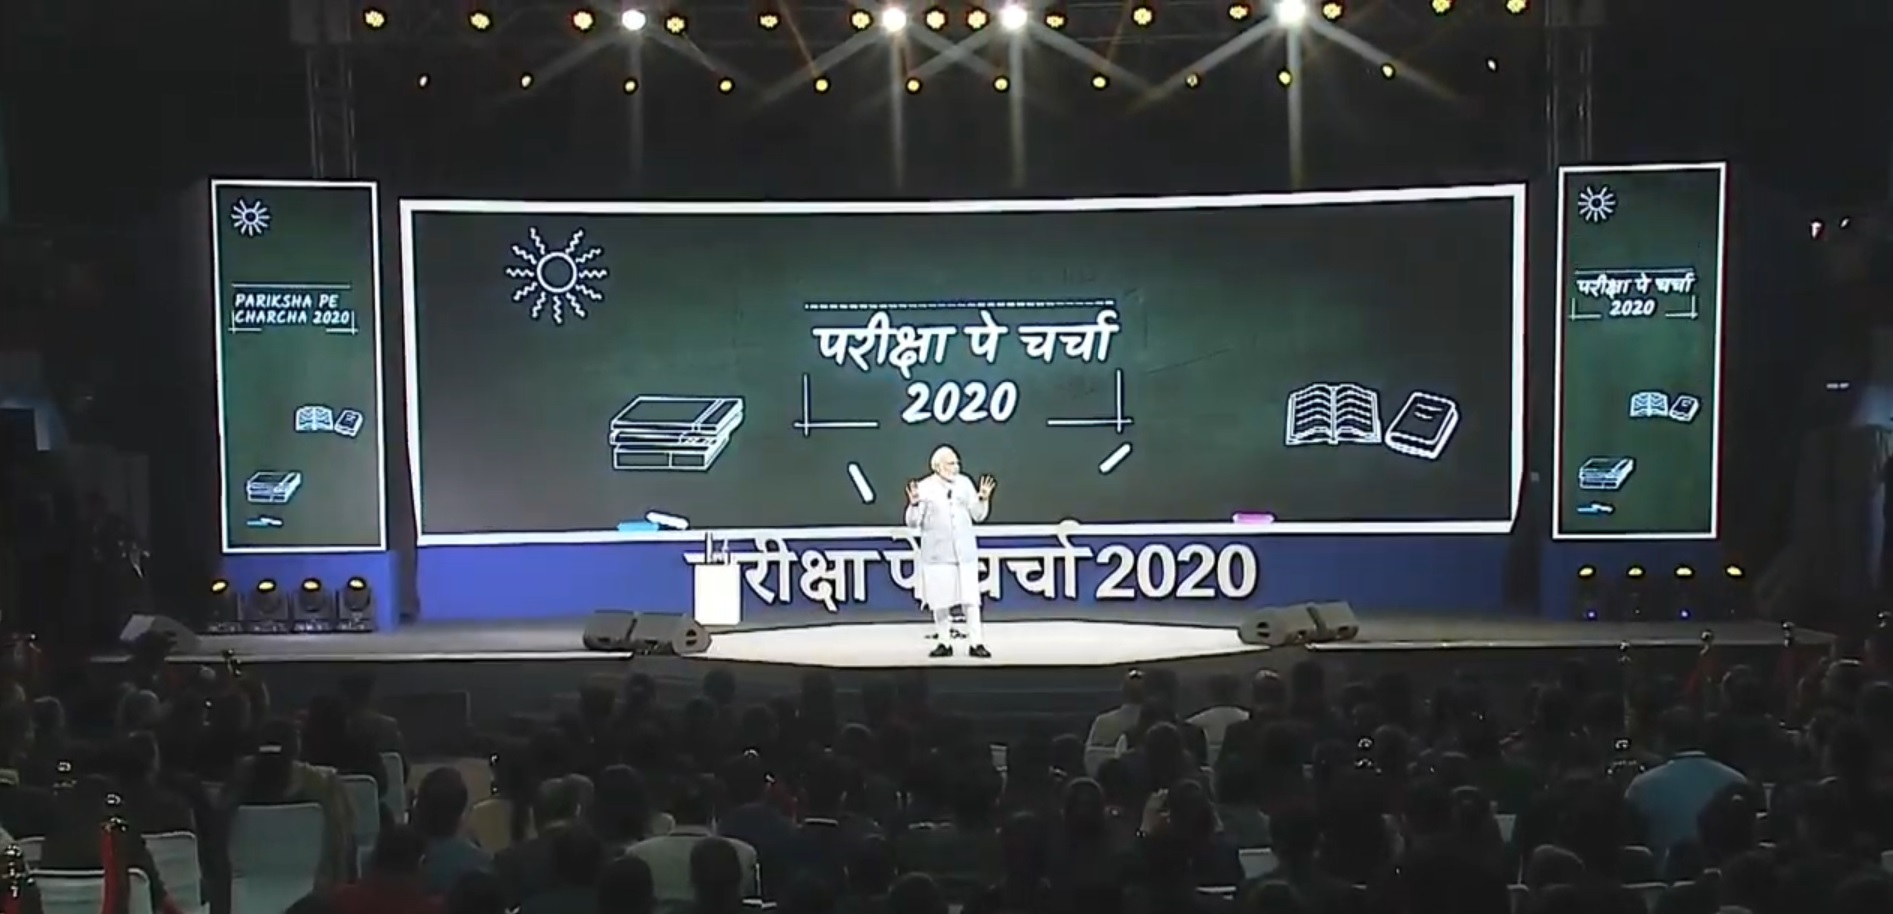 Prime Minister Narendra Modi interacts with students during 'Pariksha Pe Charcha 2020' in Delhi: Aaj kal ka fashion hai